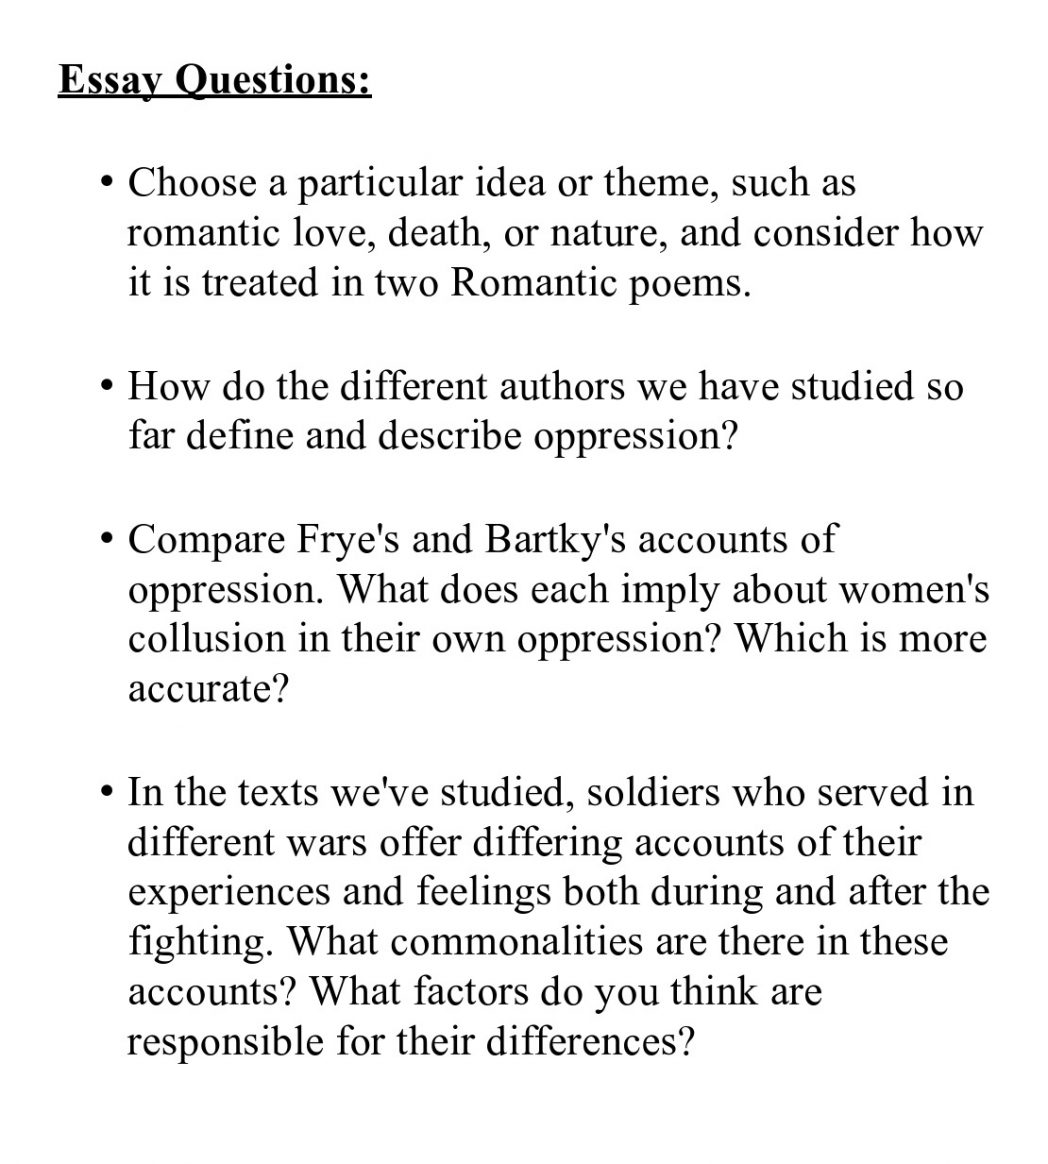 007 Nyu Essay Question Questions For Essays Cover Letter Ques Best College Application Funny Prompt 1048x1164 Awful Word Limit Supplement Stern Full